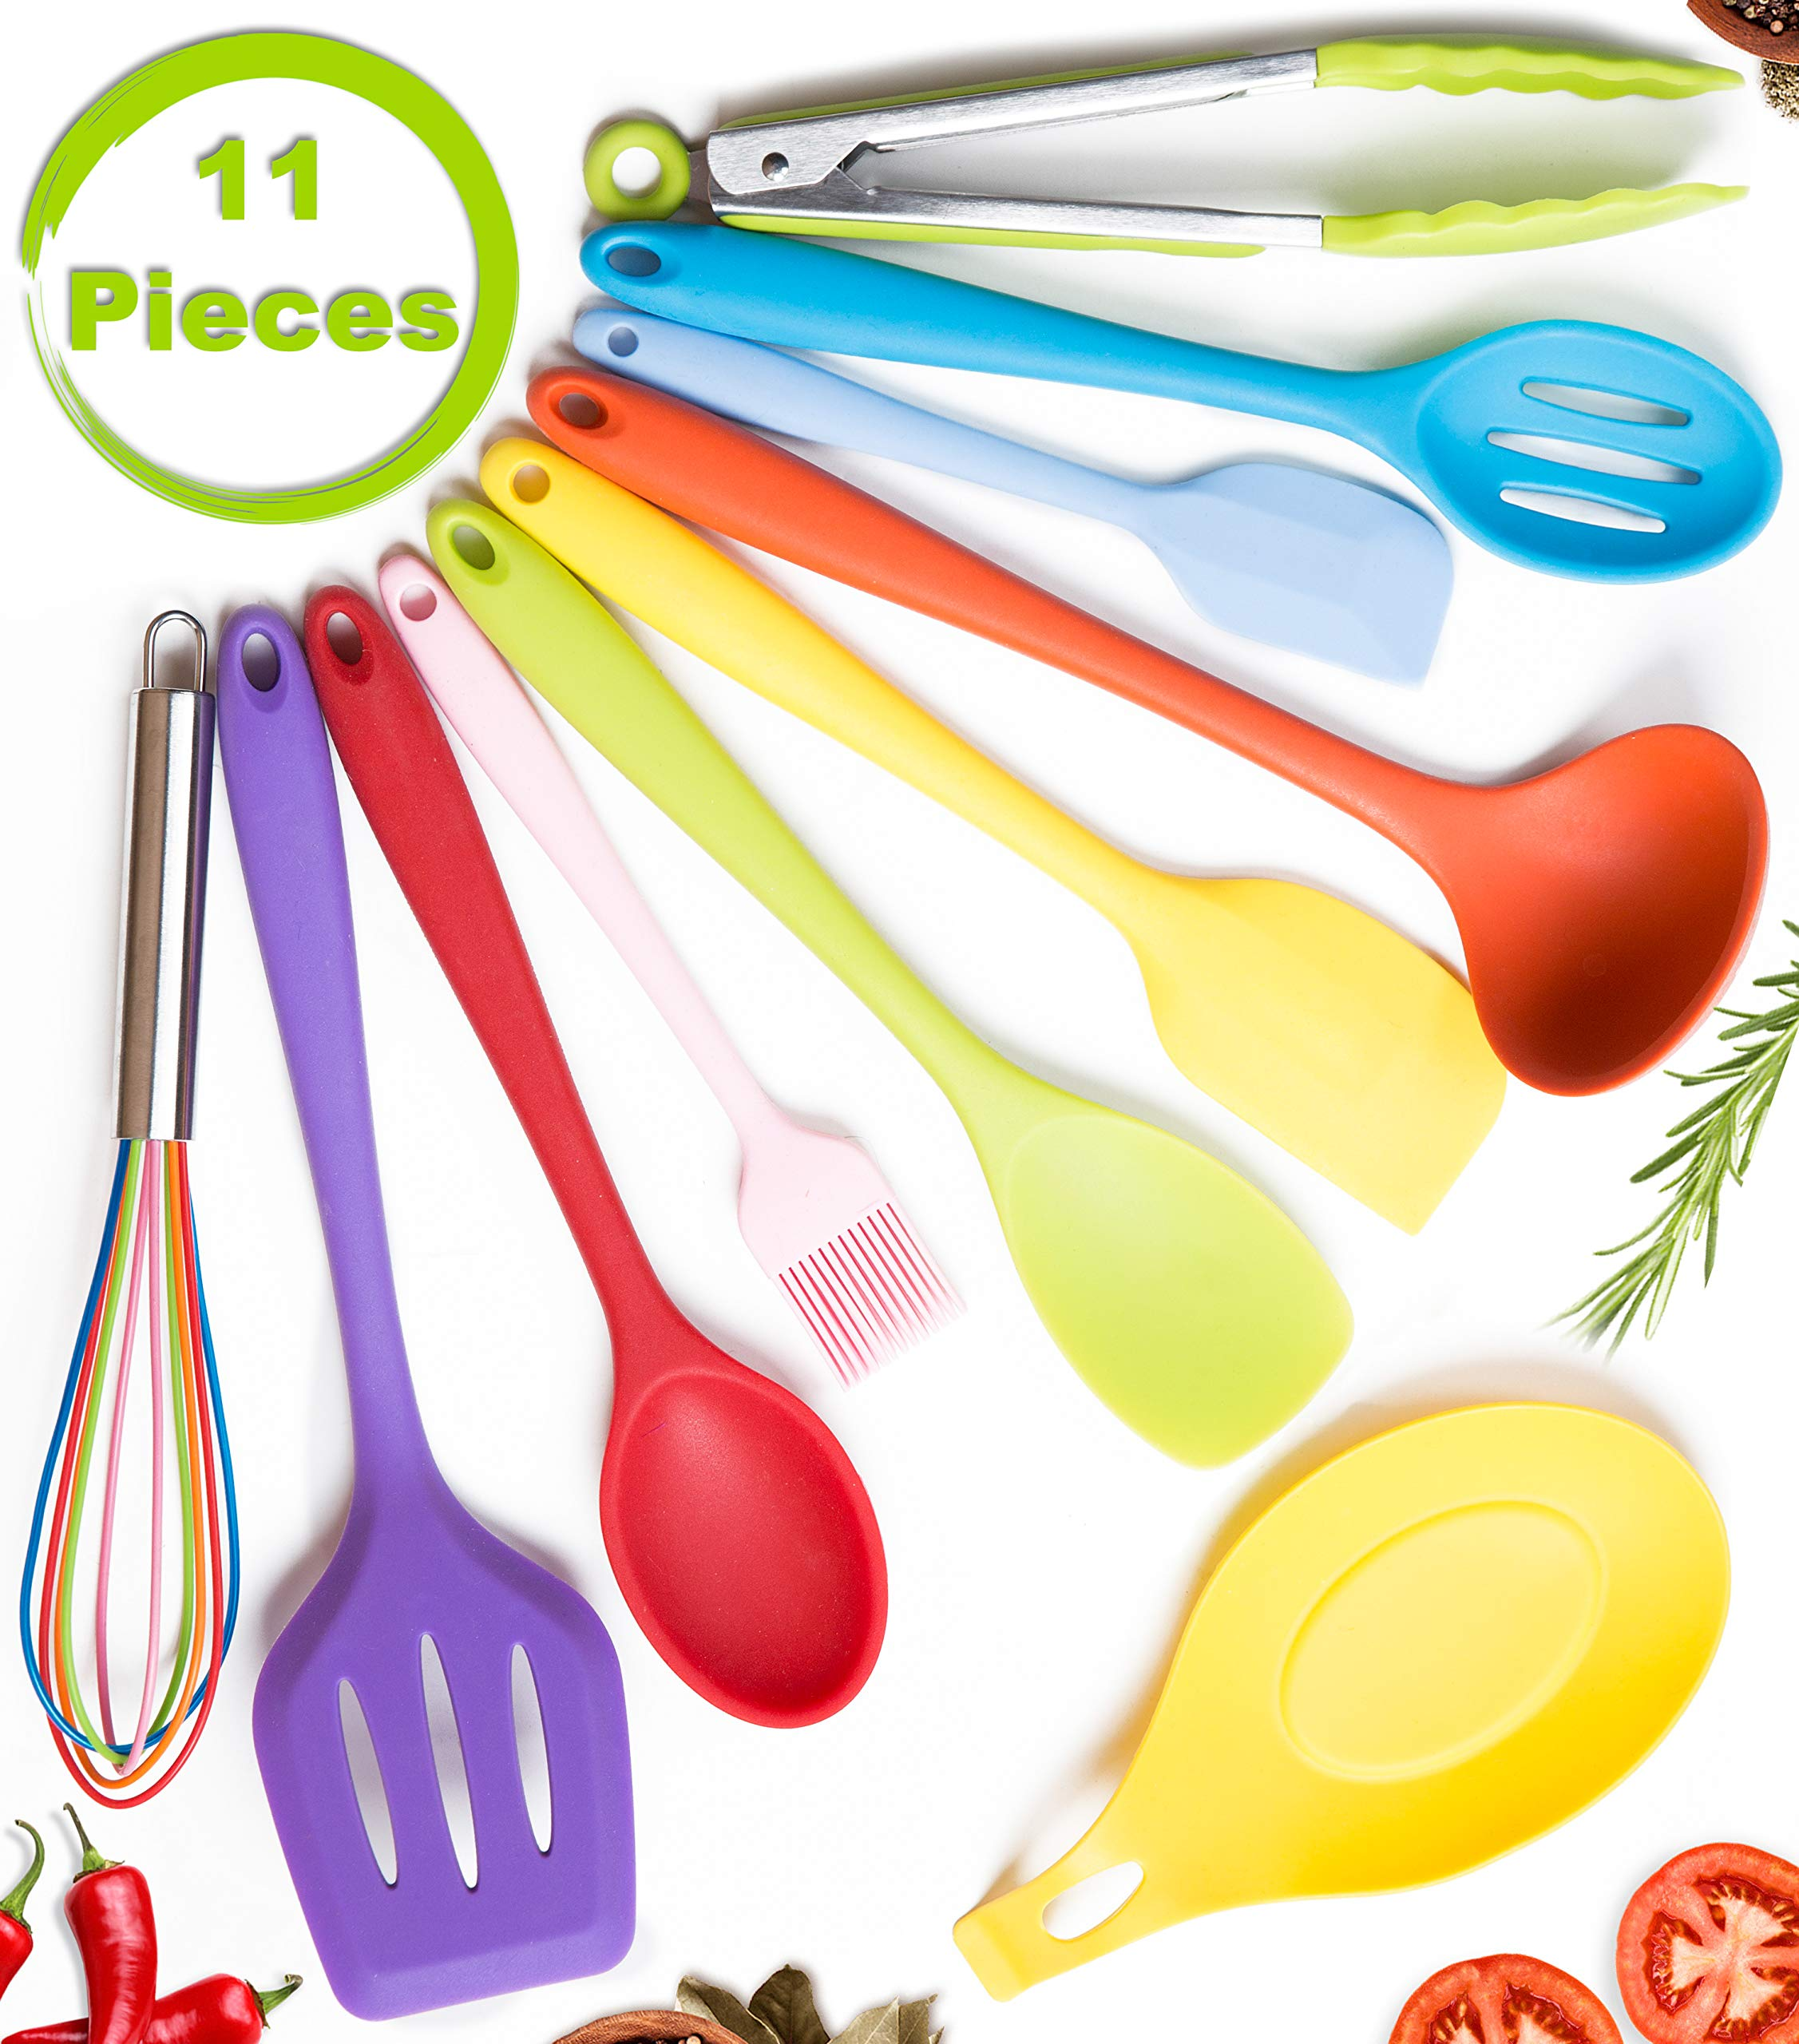 11pc Silicone Kitchen Utensil Set by CuisineFacets Colorful Cooking Utensils with Spatula, Serving Tools, Accessories and FREE Spoon Rest - Heat Resistant Spatulas and Spoons for Non-Stick Cookware 1 ✅11PC incl. FREE SPOON REST: Imagine how many colorful food creations you can now unleash all at once, because your utensil set includes everything! Silicone Wisk, Pastry Brush, 2x Spatulas, Slotted Spoon, Salad Spoon, Food Tong, All-Purpose Spoon, large Ladle, Slotted Turner, and BONUS Spoon Rest. ✅HEAT RESISTANT & EASY TO CLEAN: From the Rainbow Whisk to the Pink Pastry Brush, just pop your silicone kitchen utensils in the dishwasher to clean. Everything is made from FDA Compliant Food Grade Silicone and can withstand temperatures up to 446°F... like steaming hot pasta, pumpkin soup or pancakes. ✅WHAT'S YOUR FAVE? If you're like most people, there are always 1 or 2 kitchen tools you love the most. And if you're like us, it could even be because of color. Either way, our Cheery Utensils Set from CuisineFacets gives you the best of both - your favorite non-stick kitchen utensils, in your favorite colors too.